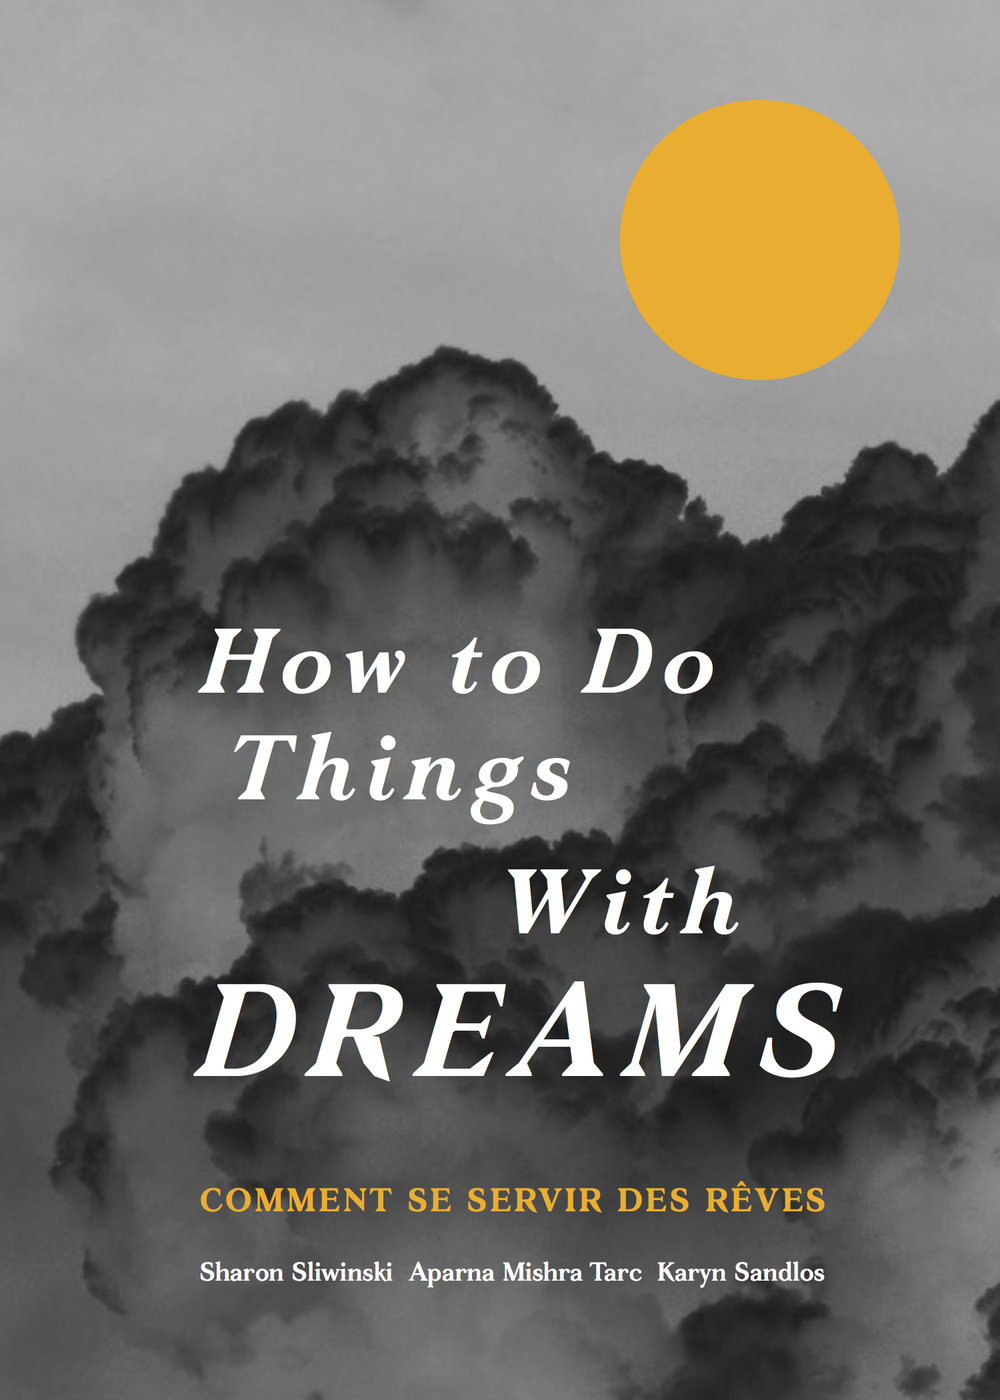 How to Do Things With Dreams - Comment se servir des rêves2018The first of our chapbooks exploring how dream-life might serve our collective struggles. How to Do Things With Dreams features three short essays by Aparna Mishra Tarc, Karyn Sandlos, and Sharon Sliwinski on the psychosocial dimensions of war, colonization, and sexual violence. Presented in both English and French.Download the PDF for free or order print copies for $10 (CAN) + shipping. Please contact us for order details.